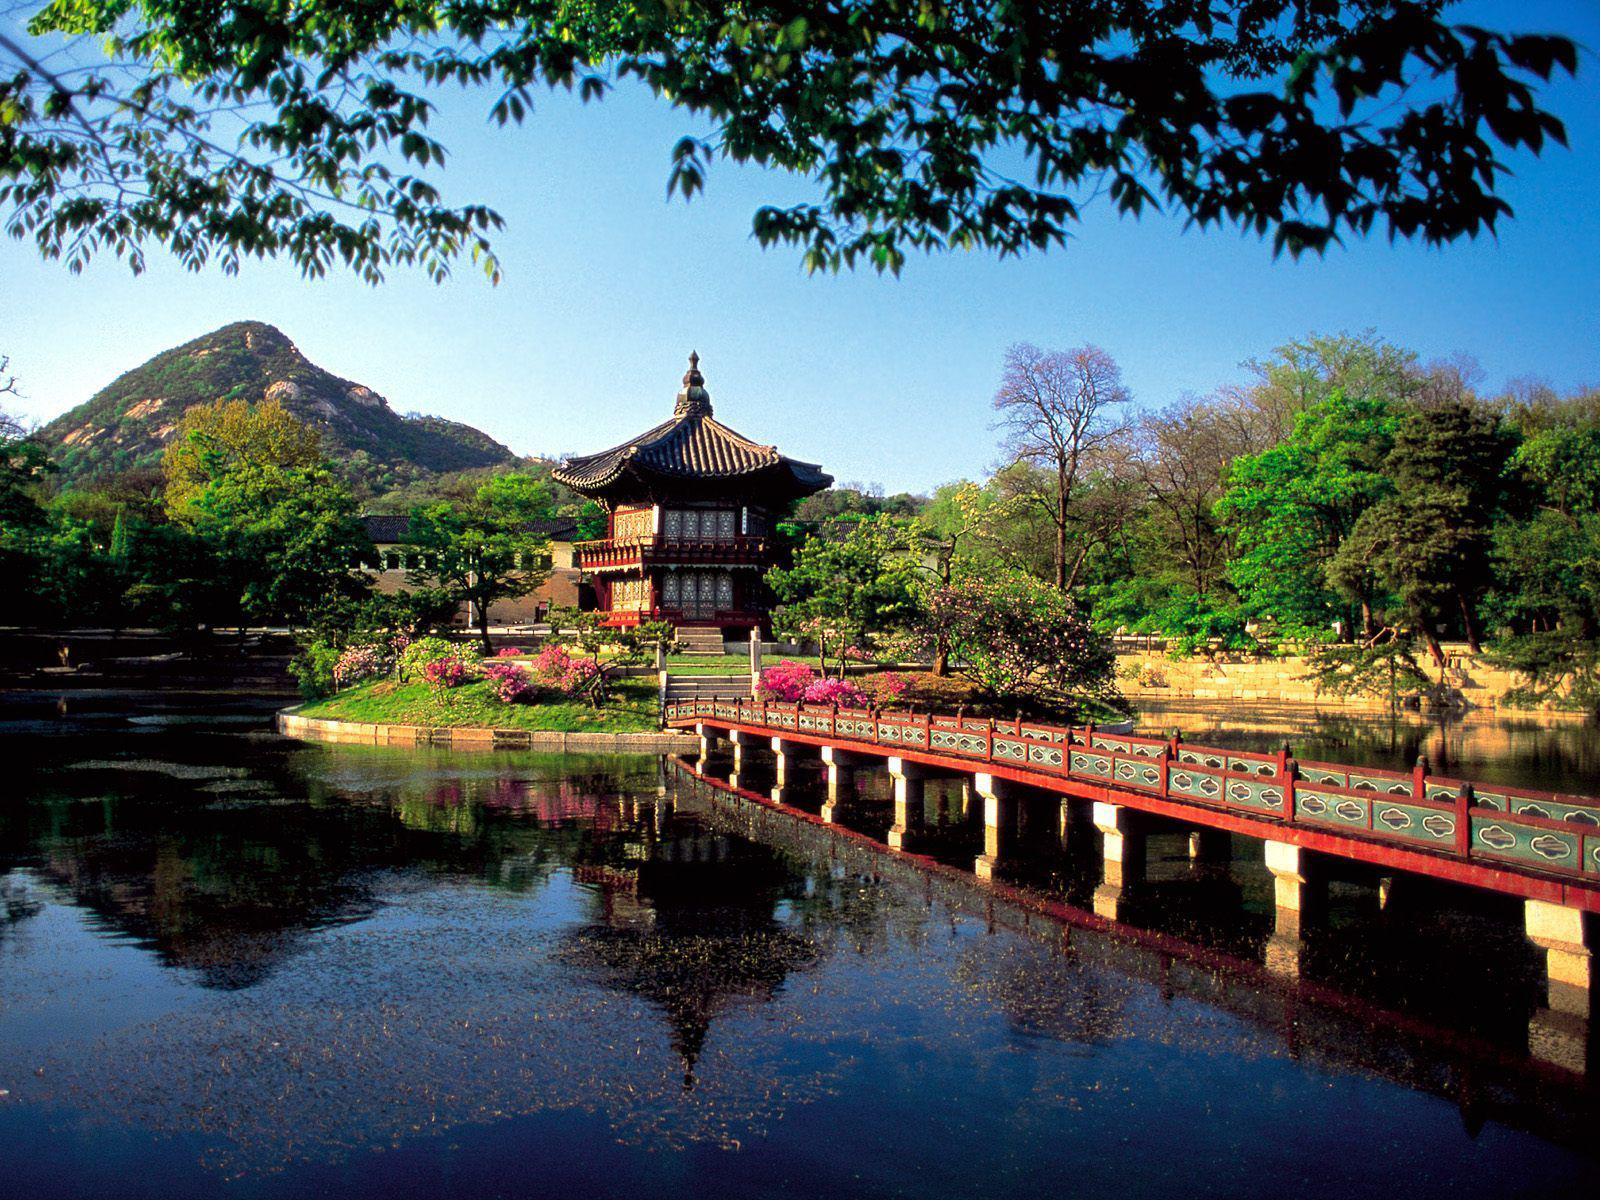 South Korea, Seoul, Hyangwonjong Pavilion Lake